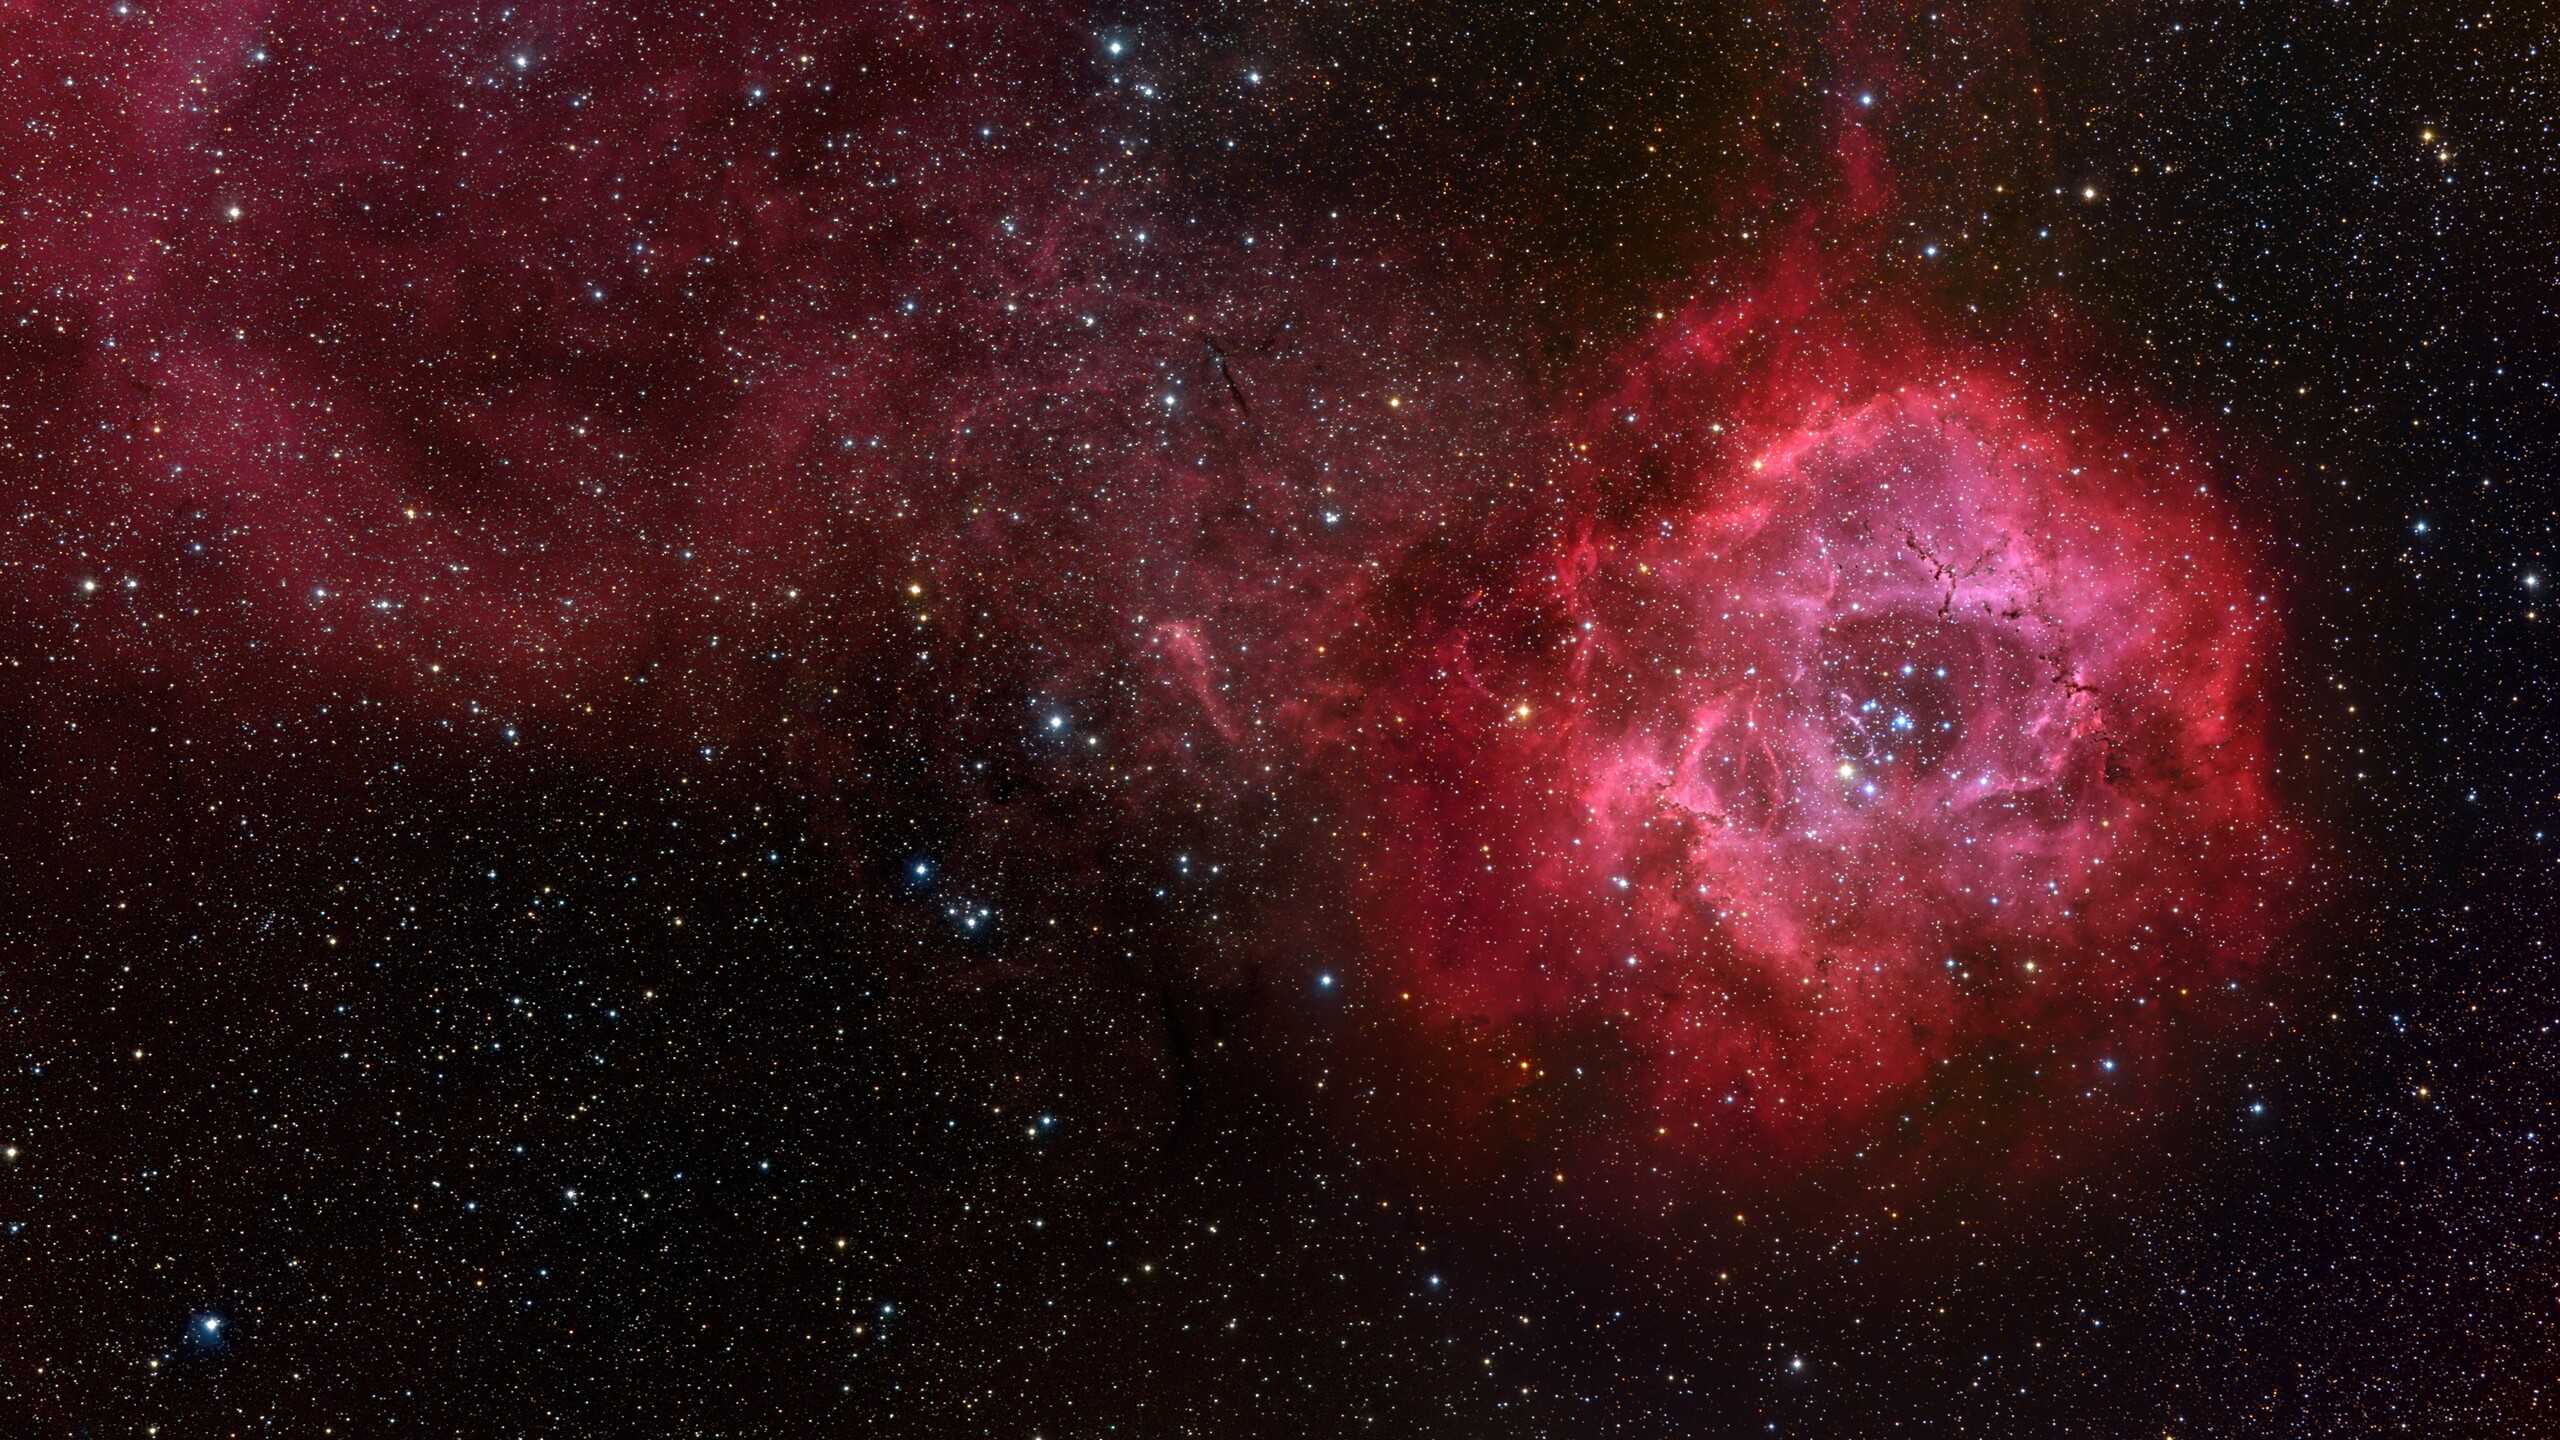 2560x1440 Red Galaxy 4k 1440p Resolution Hd 4k Wallpapers